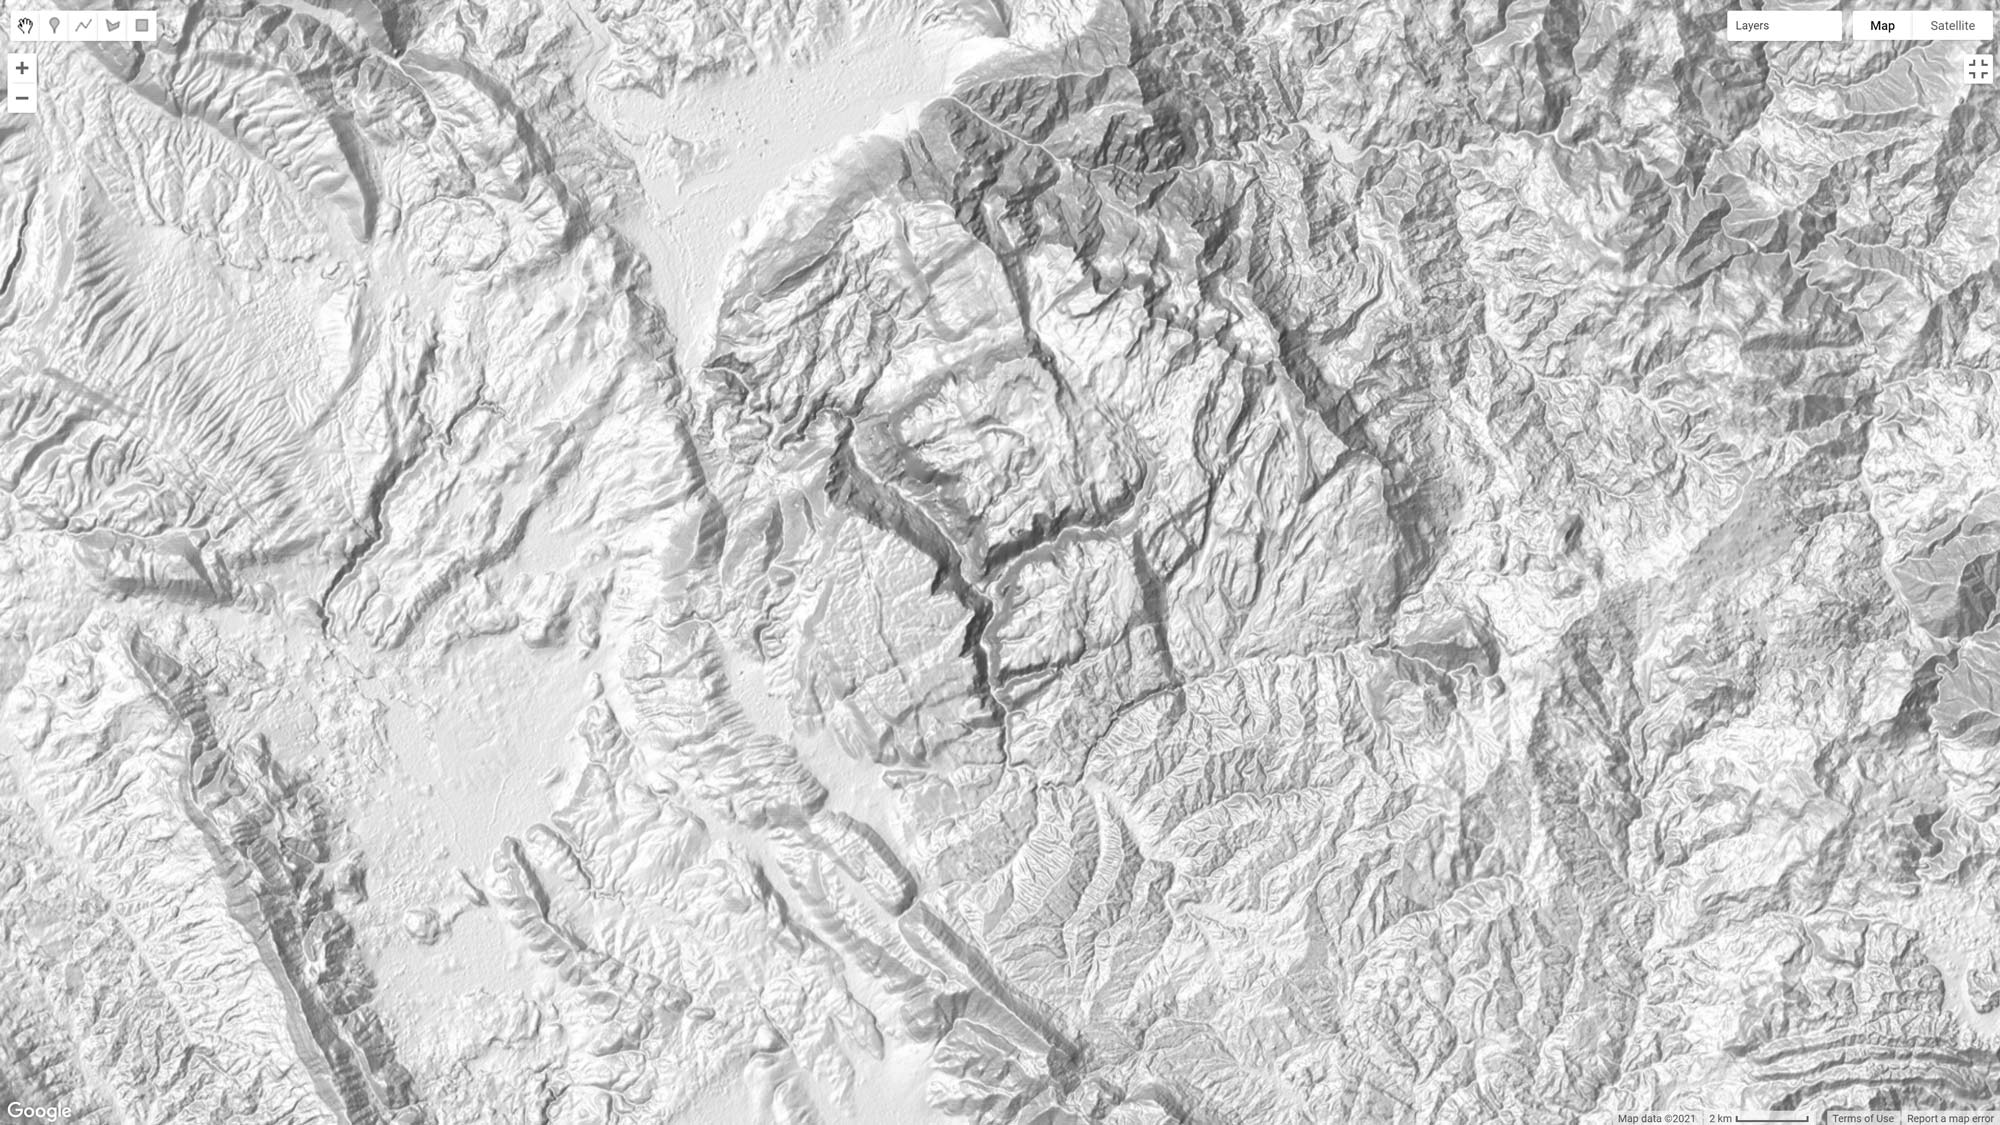 Picture 1: Shaded Relief in Earth Engine derived from mosaicing the Multidirectional Hillshade and the Slope raster.